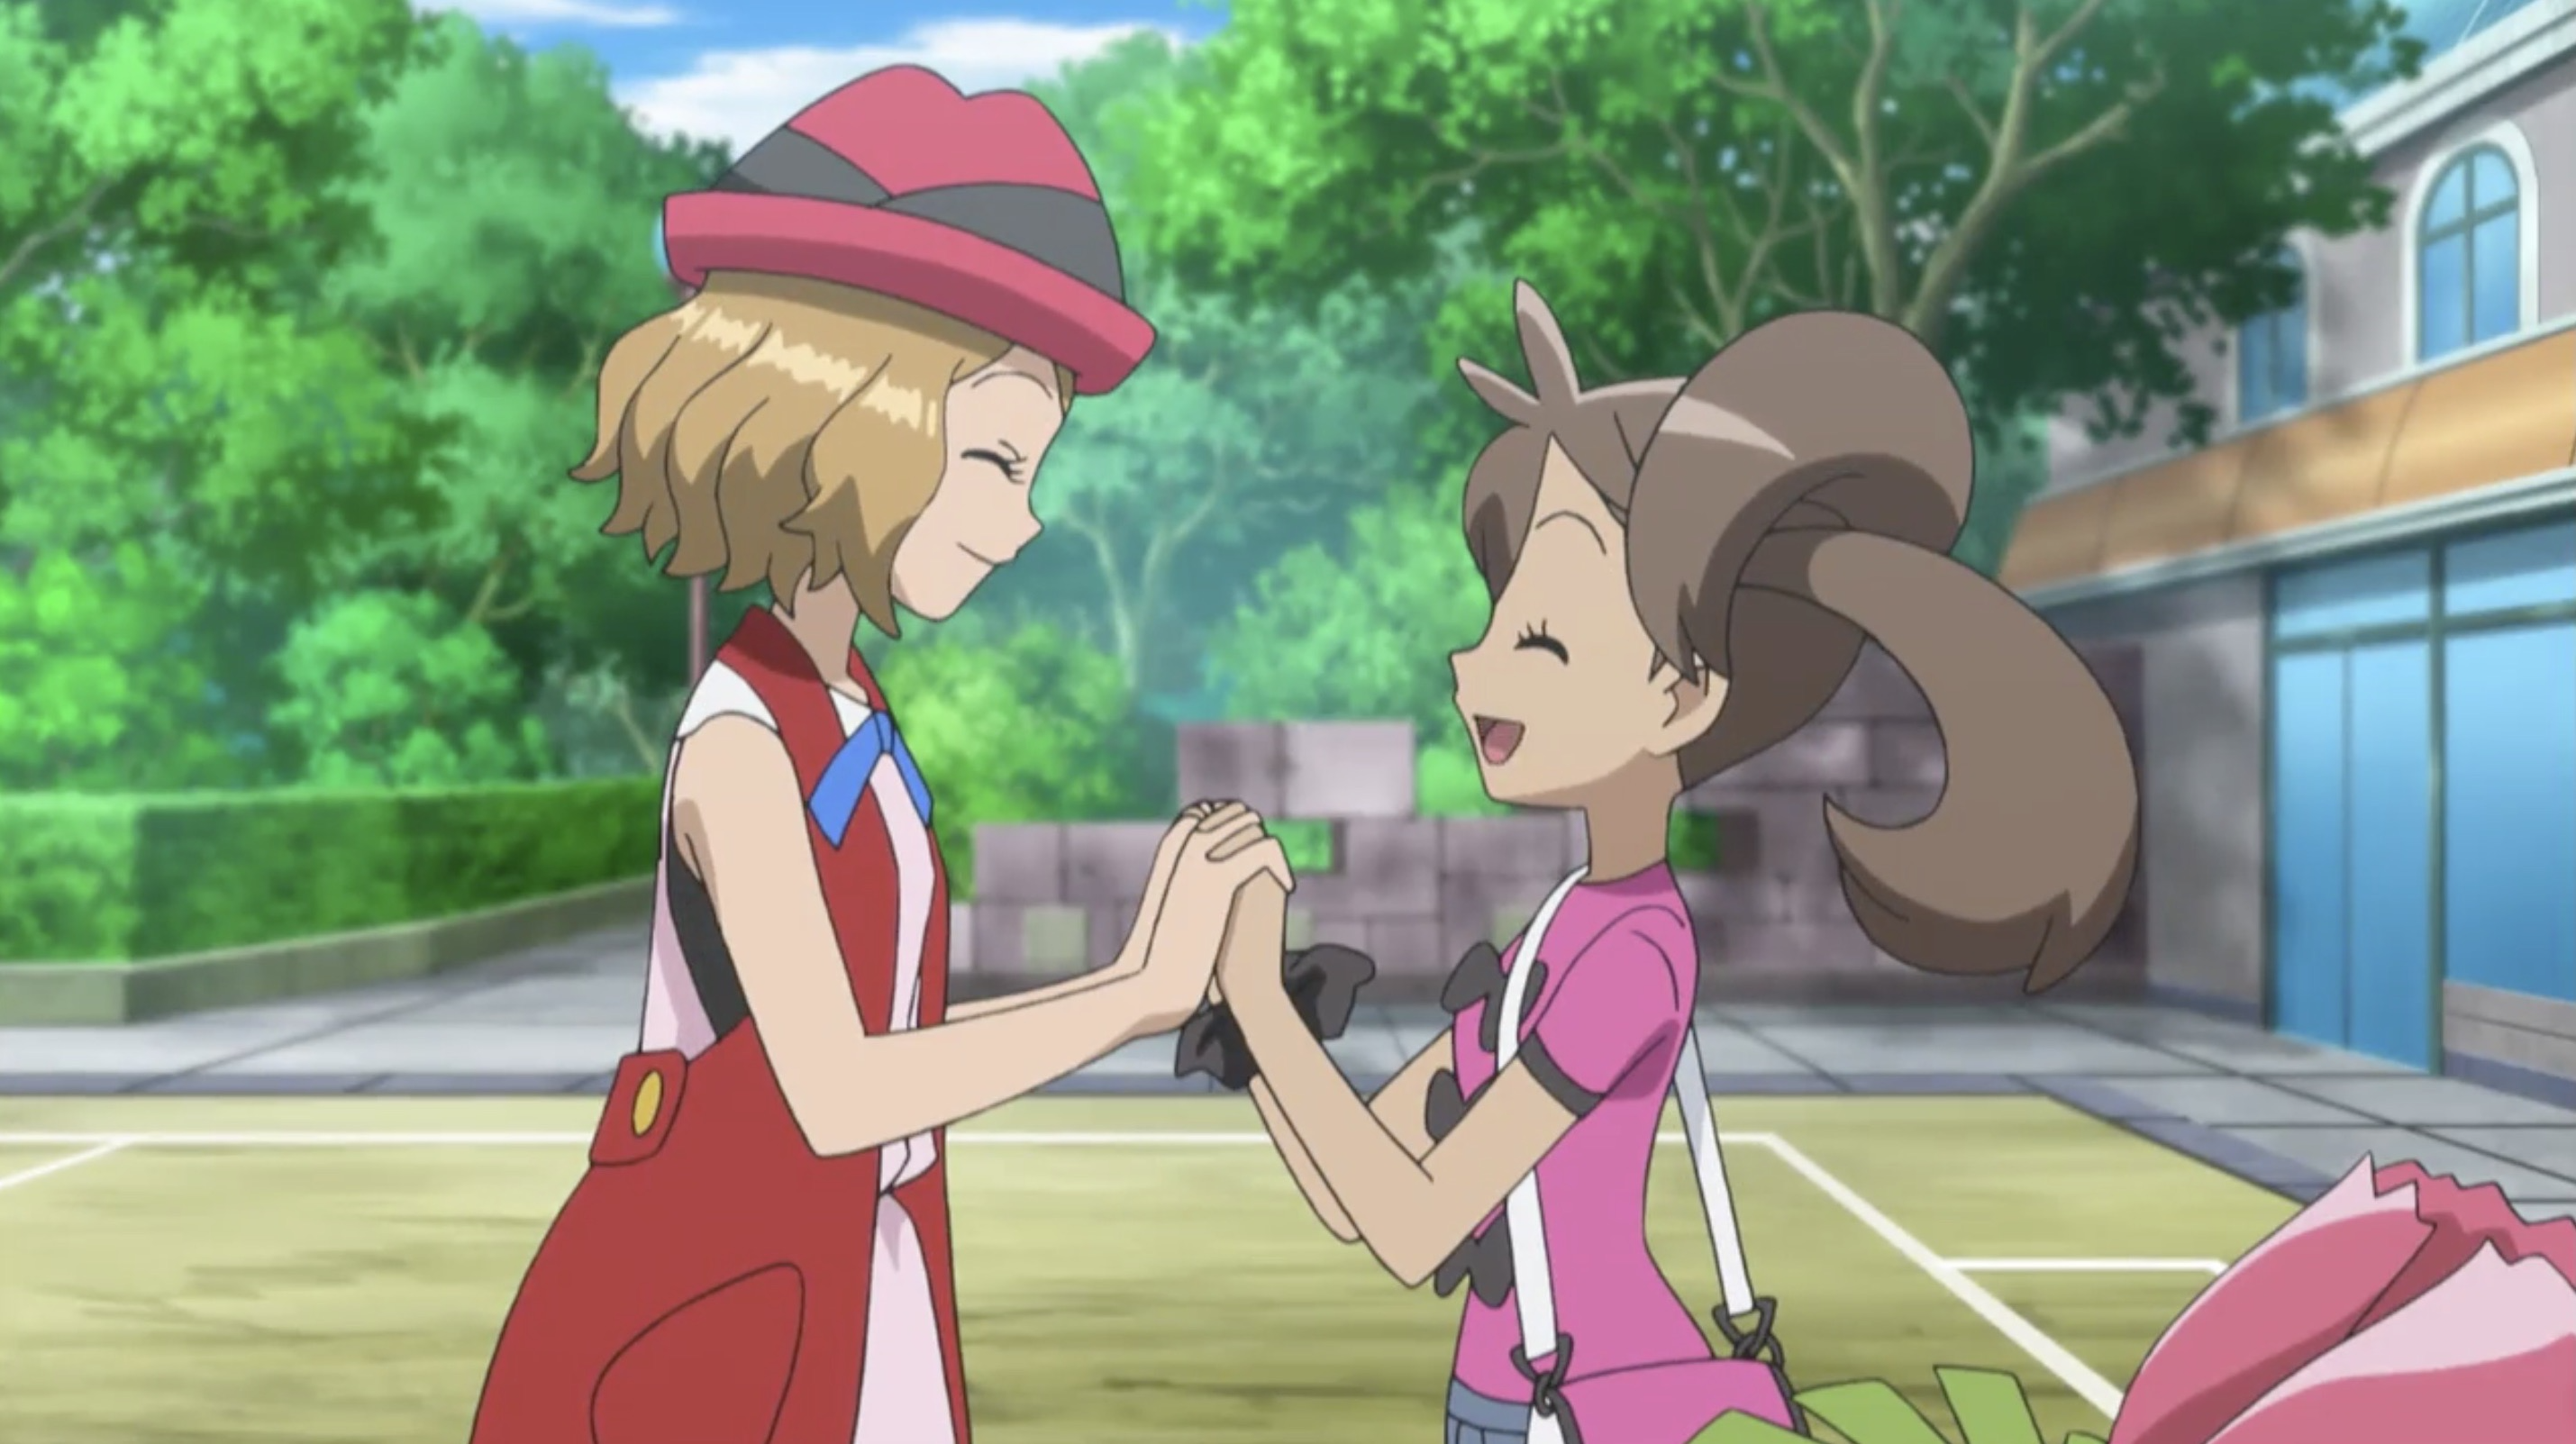 File:Serena and Shauna.png